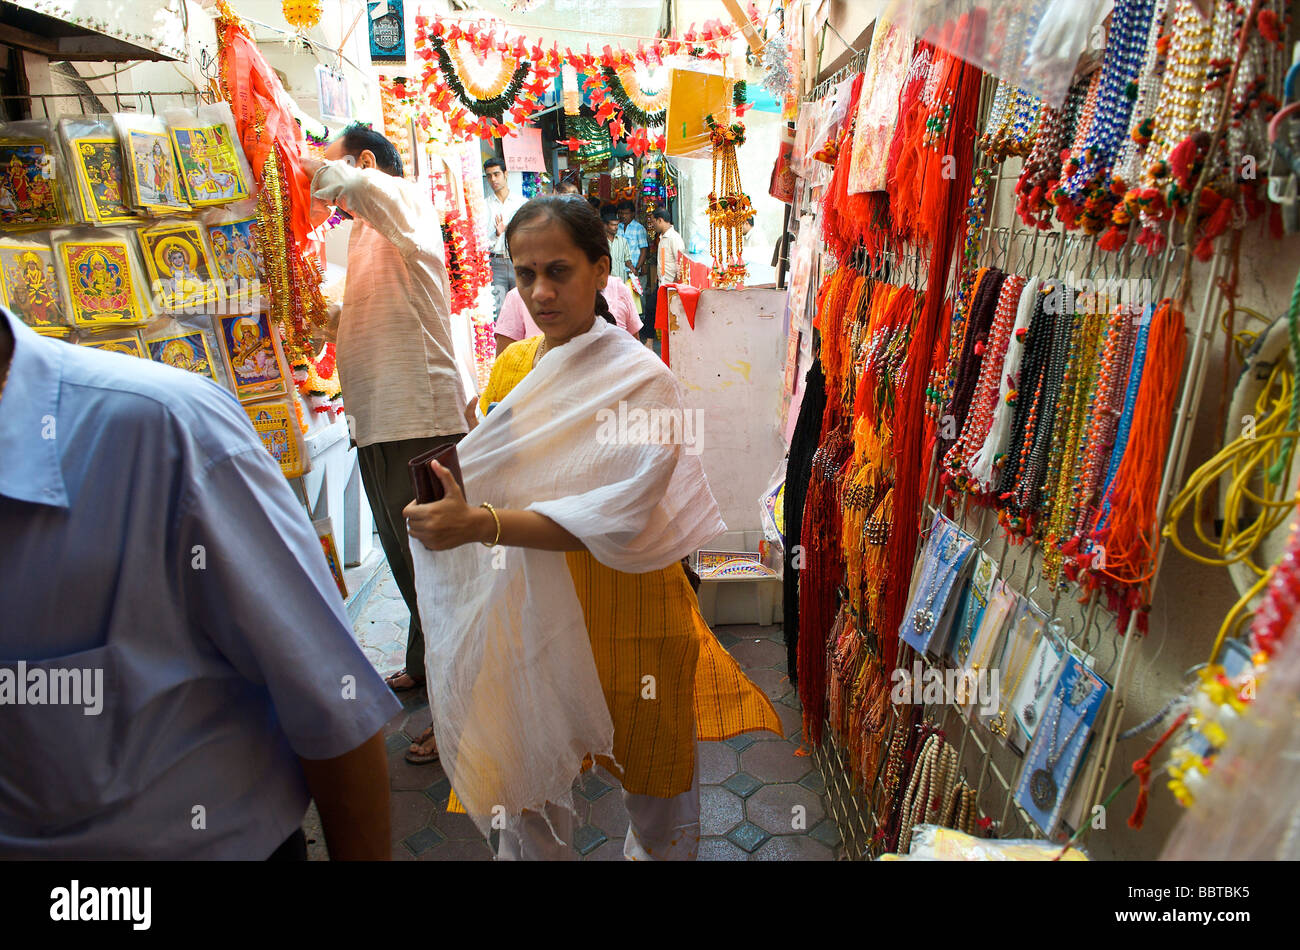 Dubai an Indian shop in the old Arab town Stock Photo